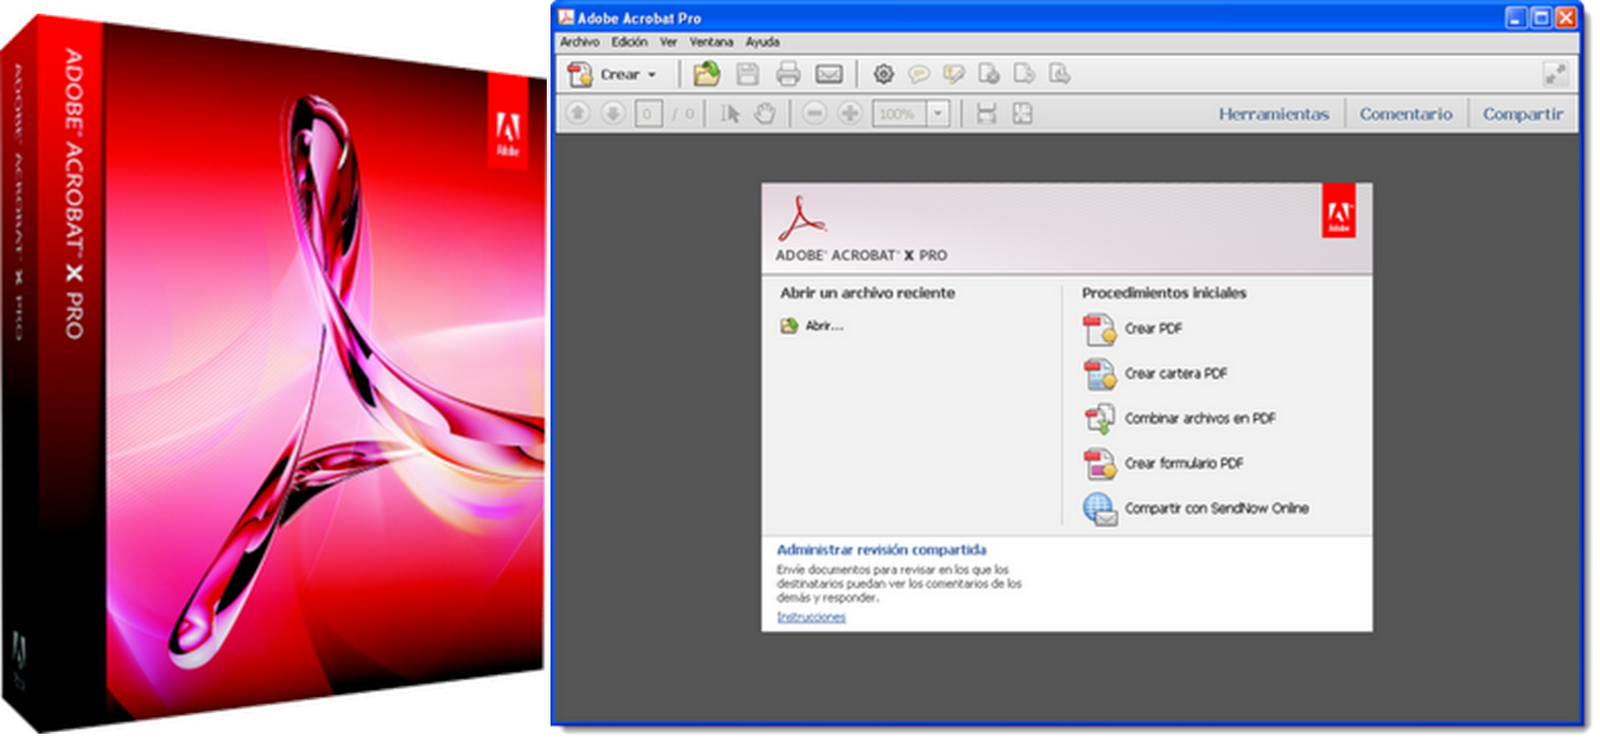 Adobe Reader 9.1 Free Download For PC Windows 7, 8, 10 ...